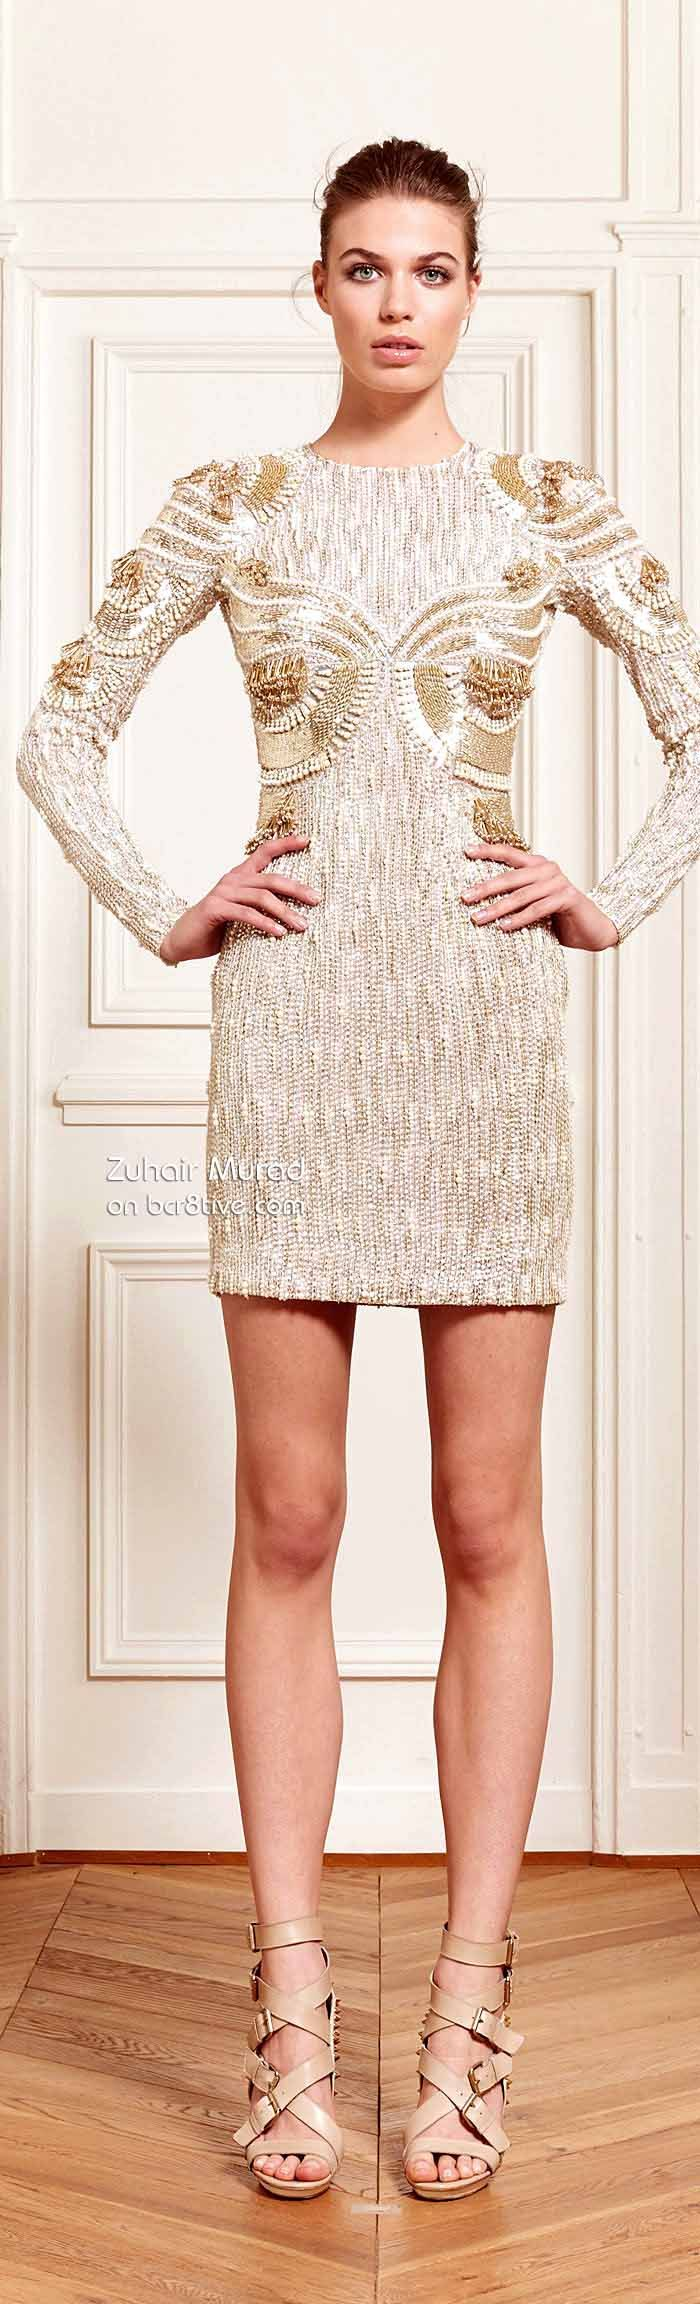 Zuhair Murad Resort 2014 www.finditforweddings.com